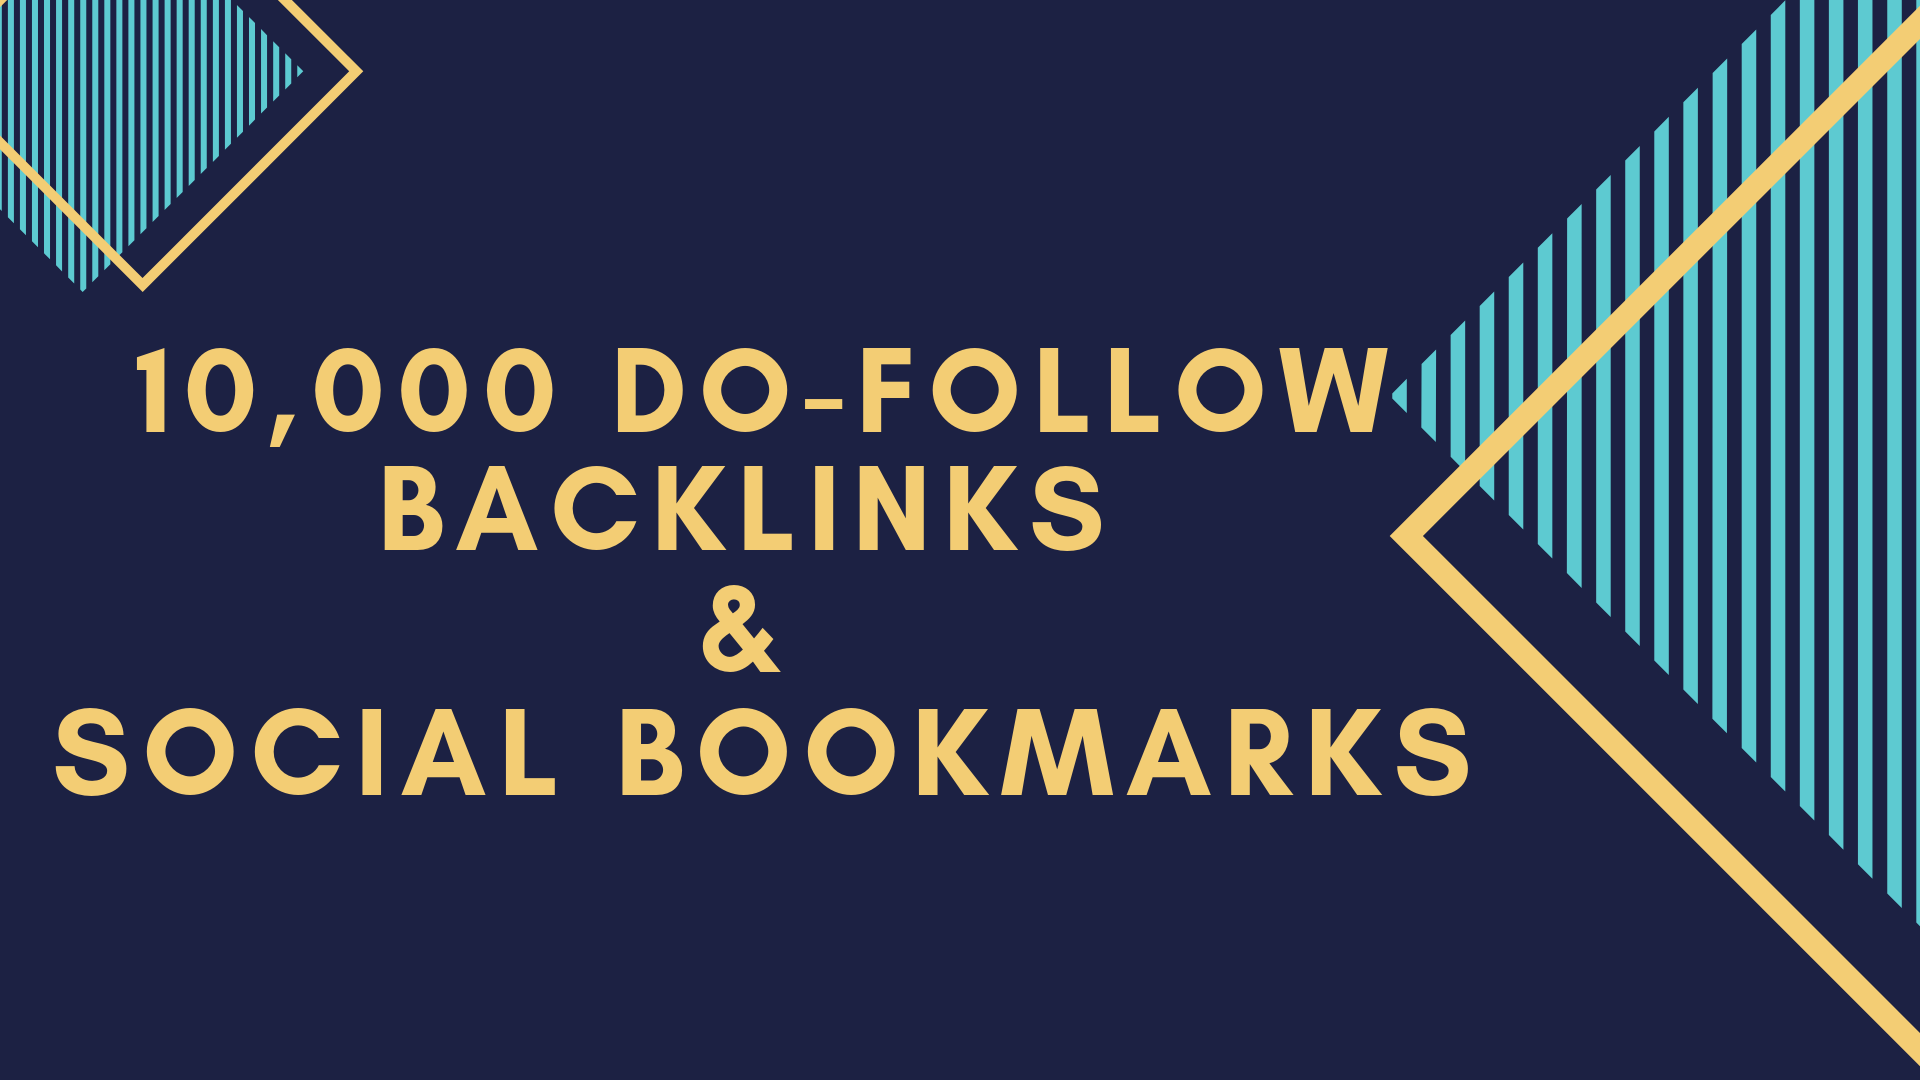 Rank on Google first page with 10,000 Do-Follow Backlinks and Social Bookmarks